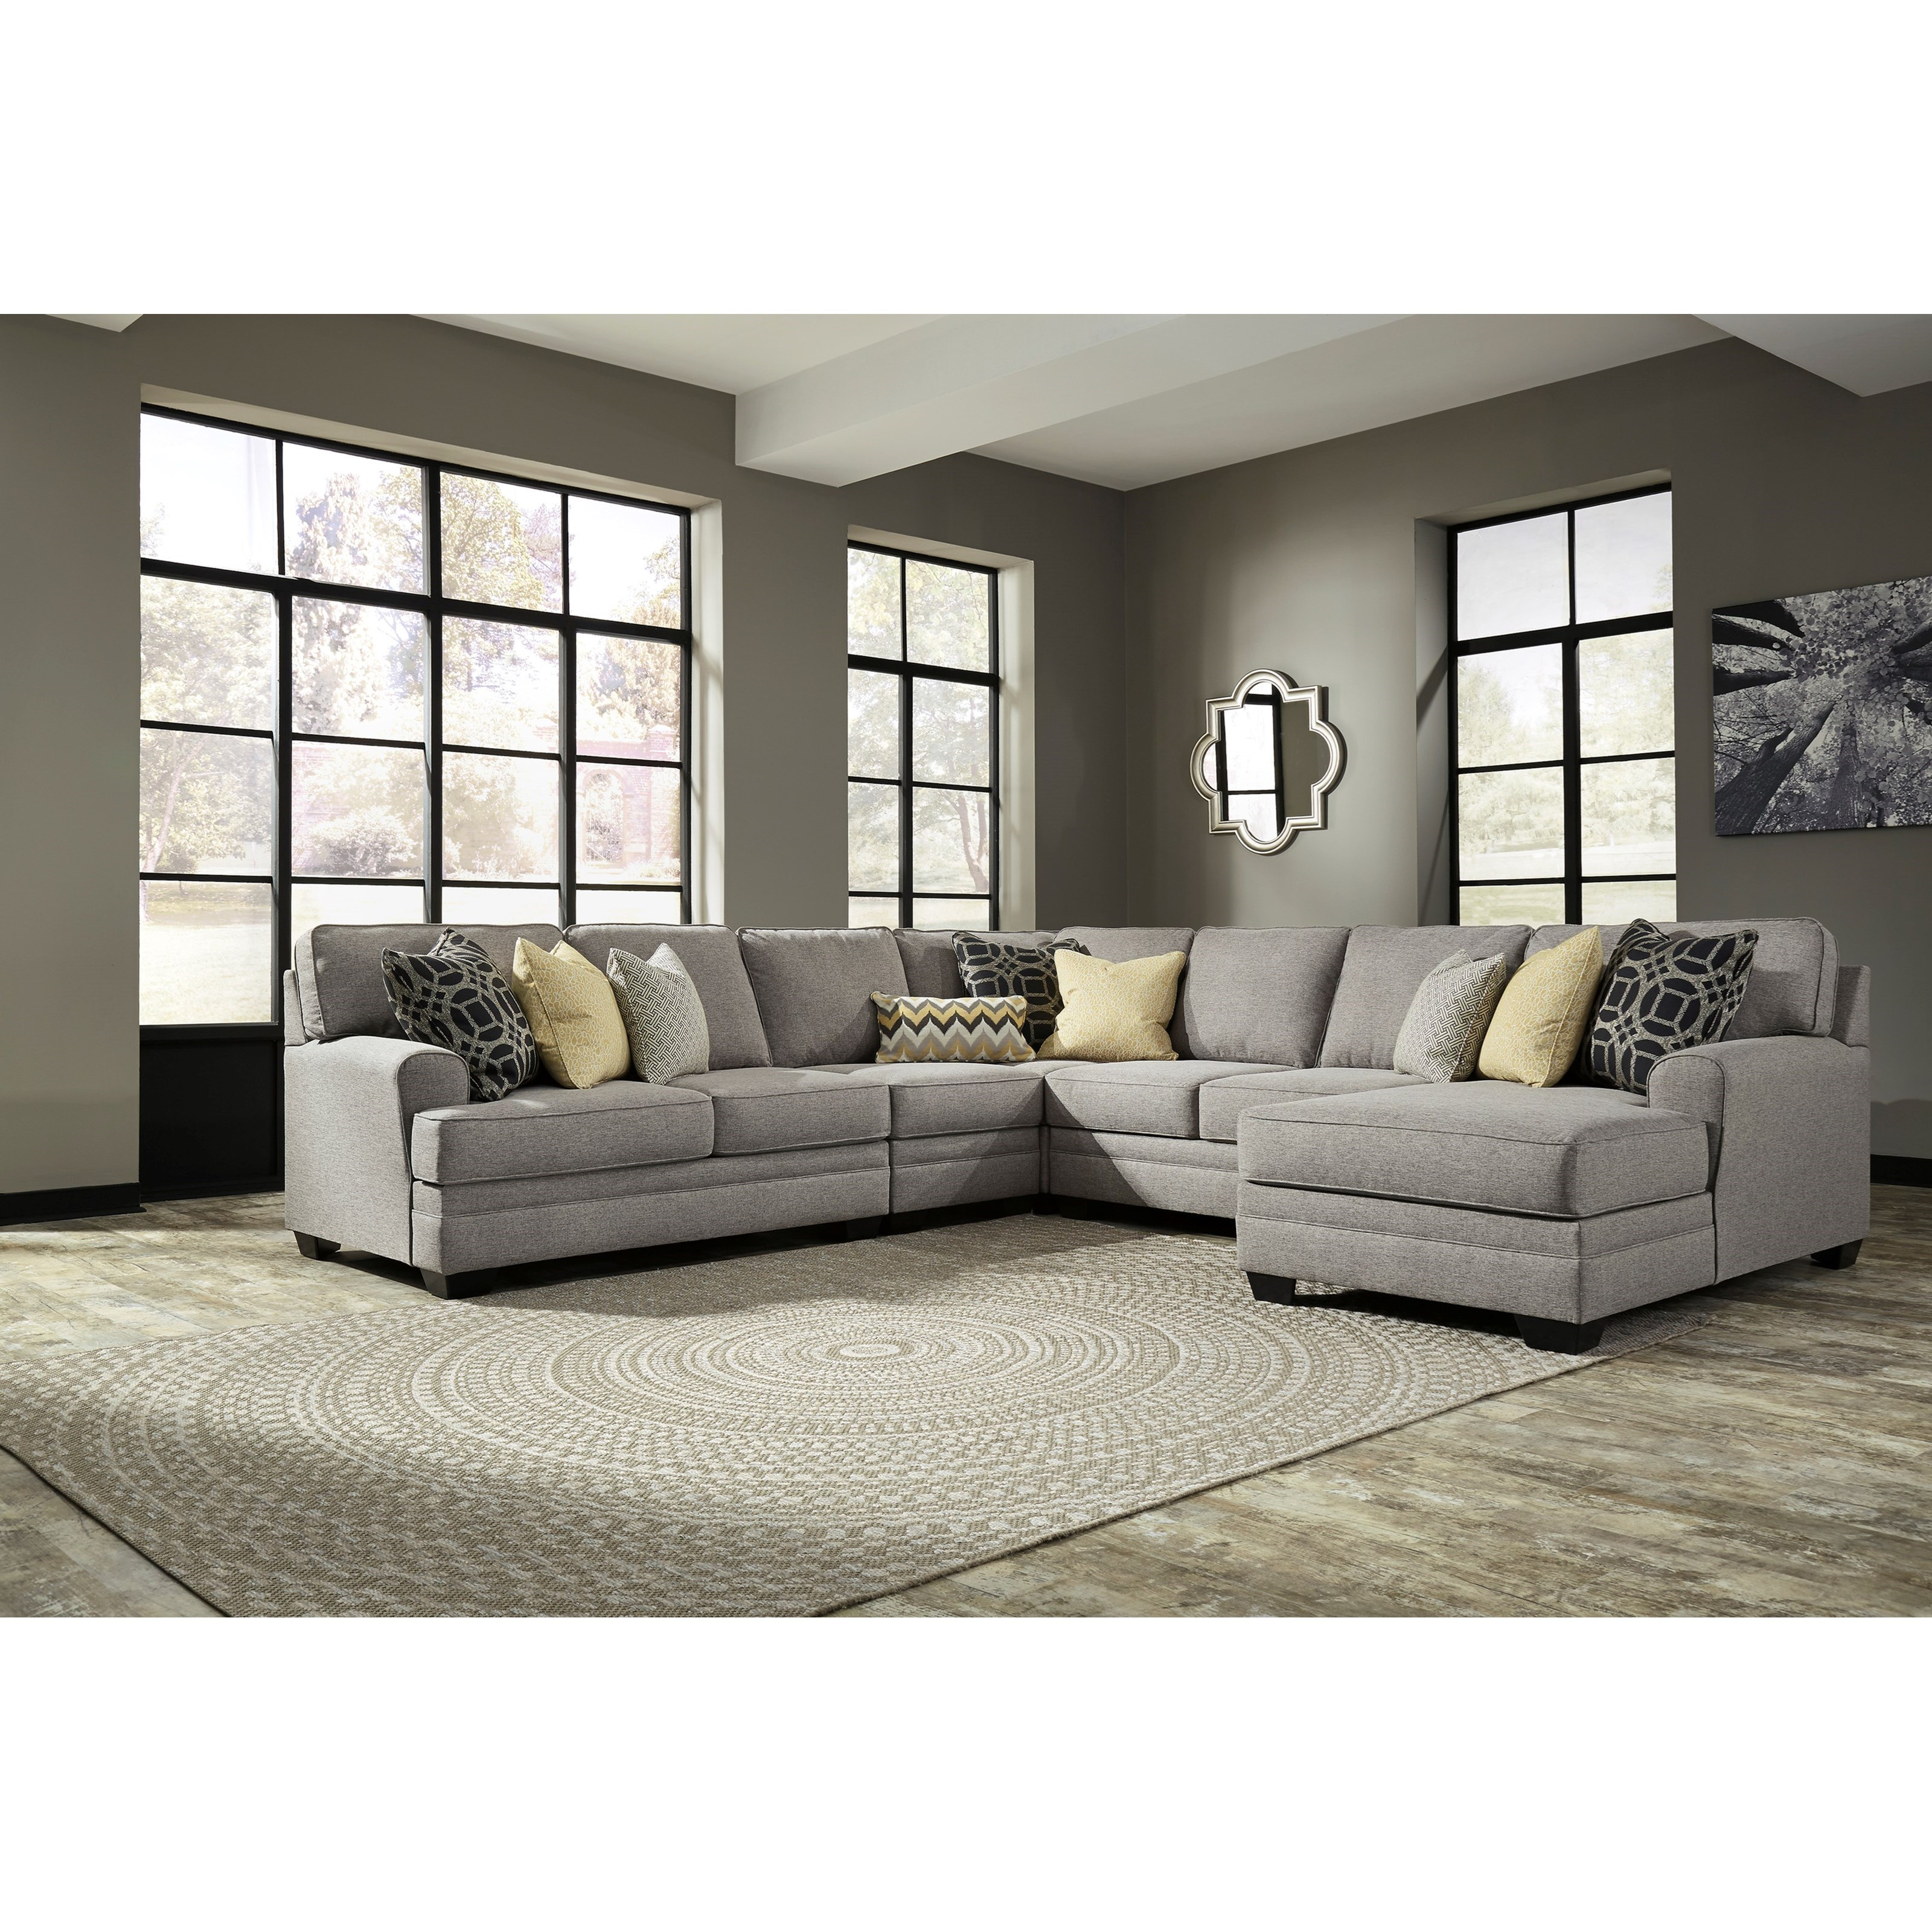 Ashley Furniture Bryant Ar Collection Collection Ashley: Ashley Cresson 5pc Right Arm Facing Corner Chaise